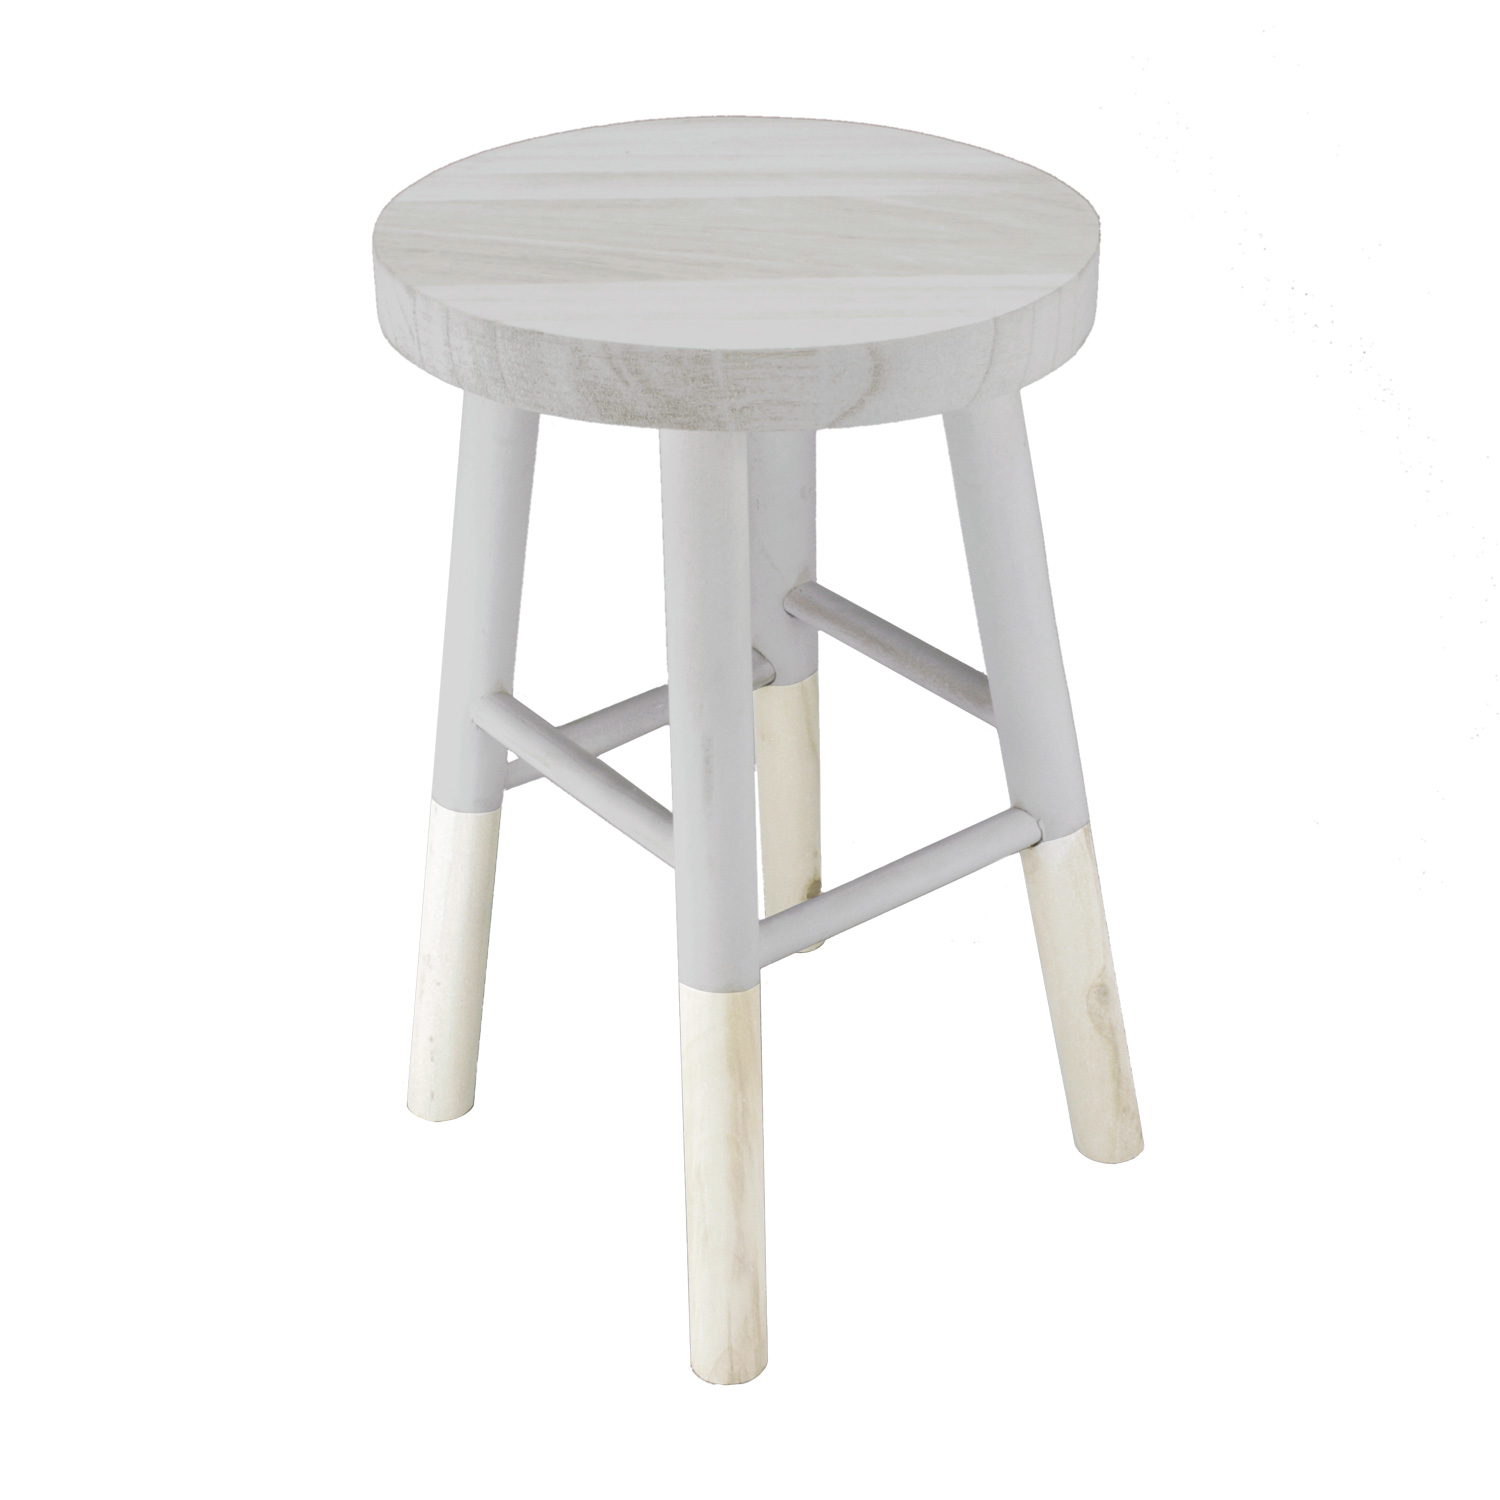 Hocker Budget stool Kitchen stool Seat Wood Storage Children's stool